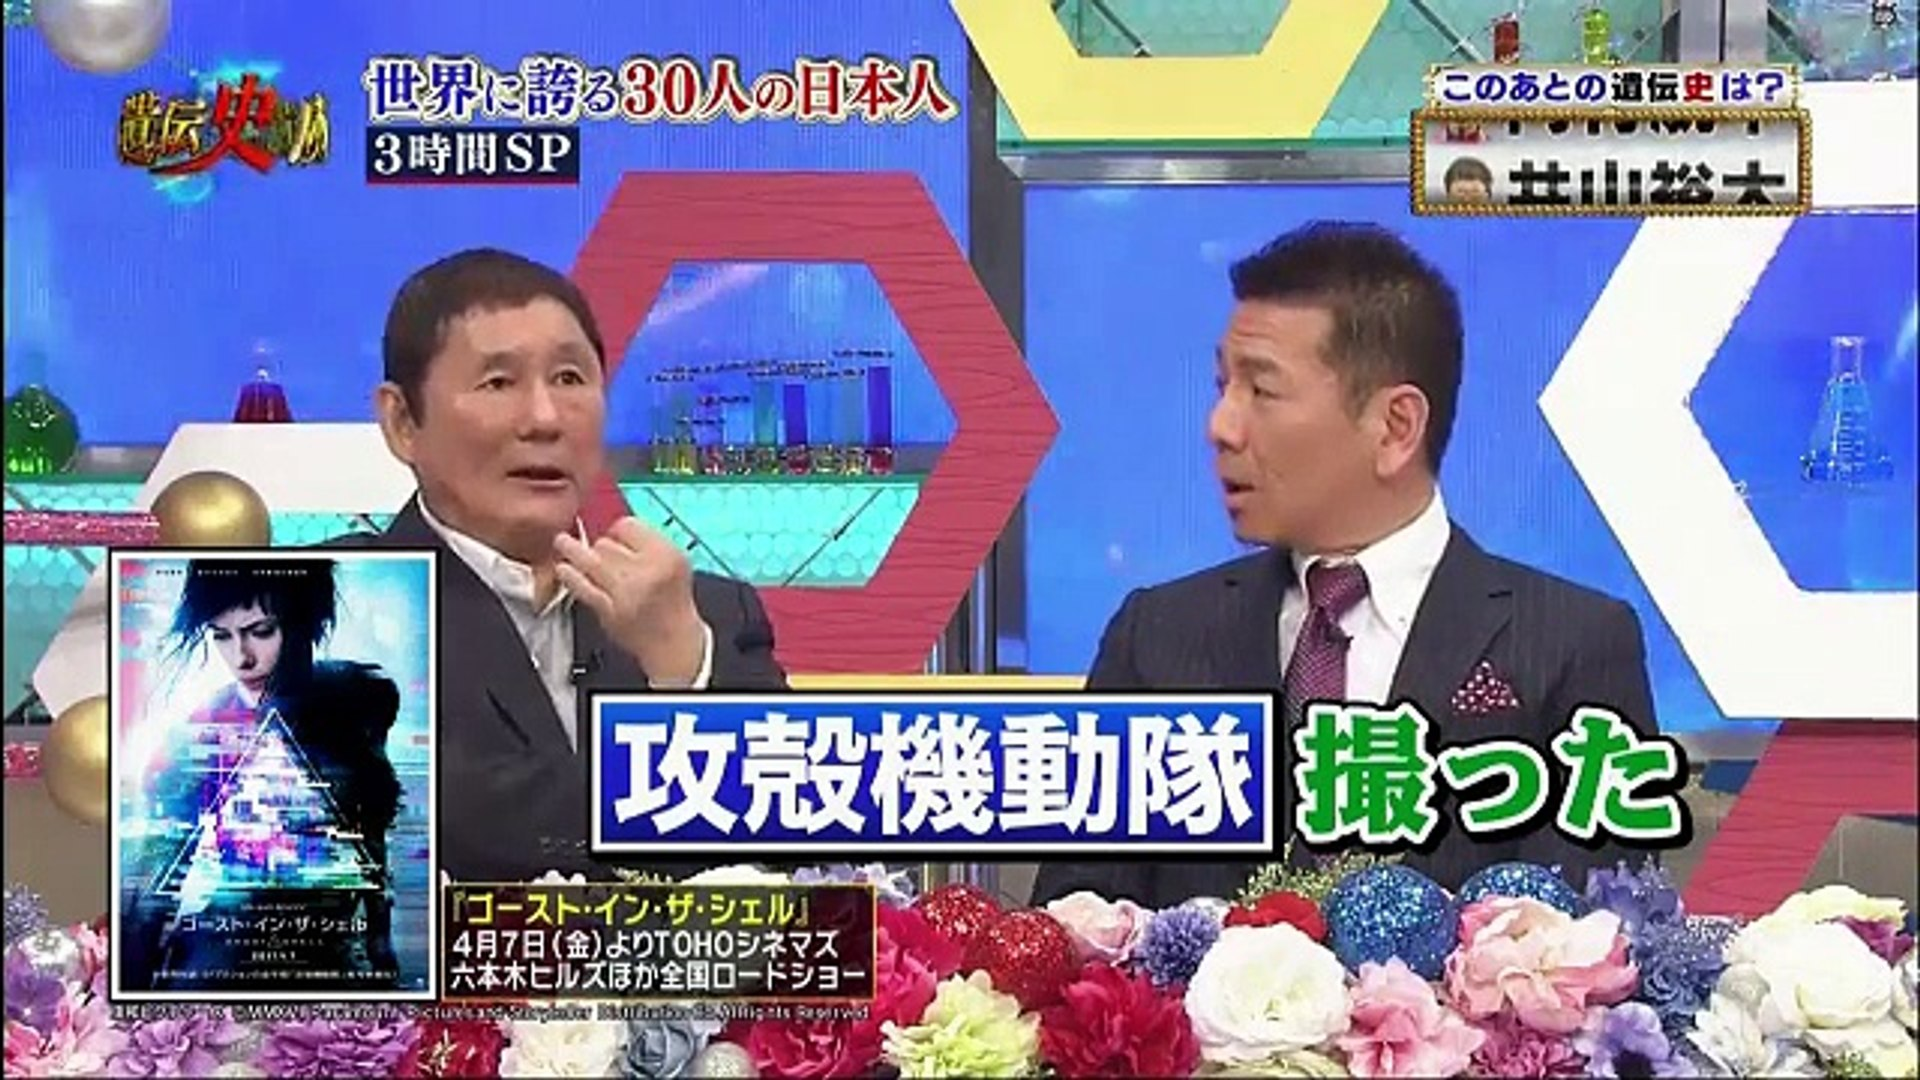 HD] 成功の遺伝史4 2017年3月6日 170306 (2/2) - video Dailymotion